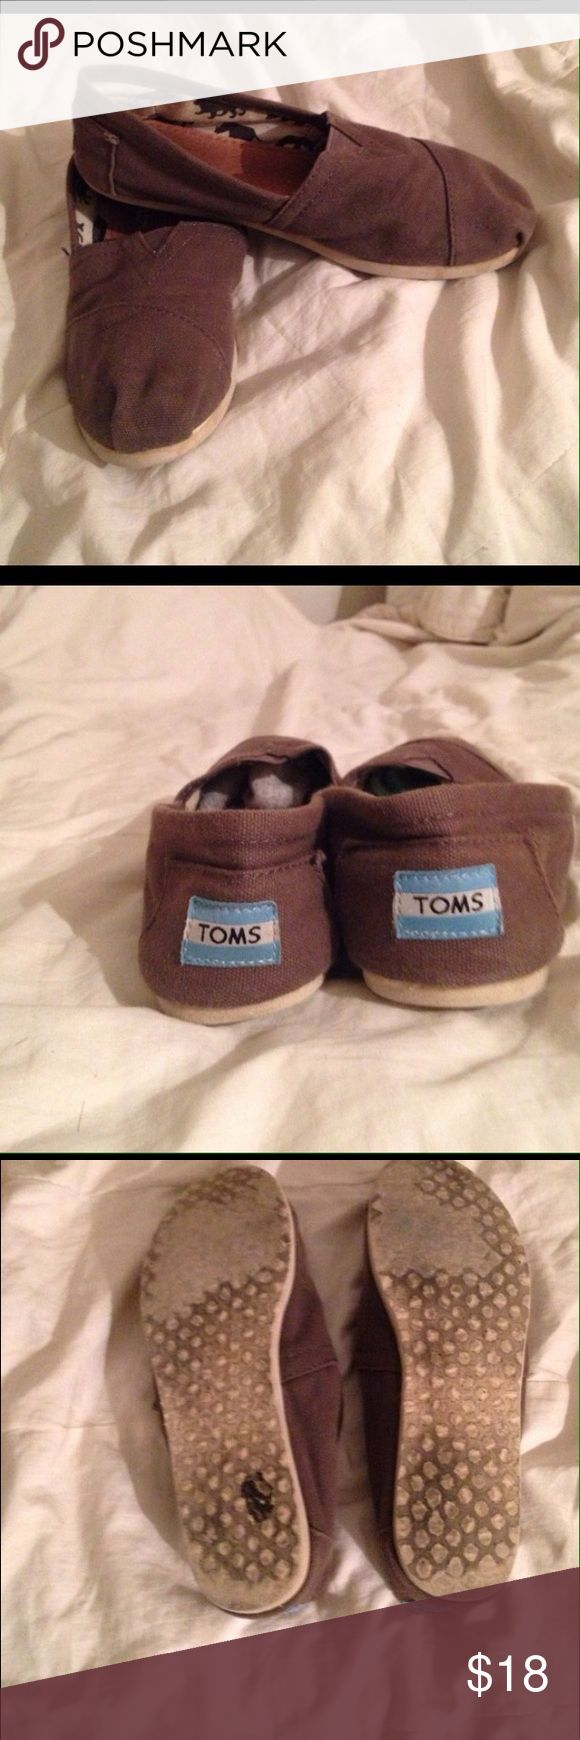 Gray TOMS Perfect for spring TOMS Shoes Flats & Loafers